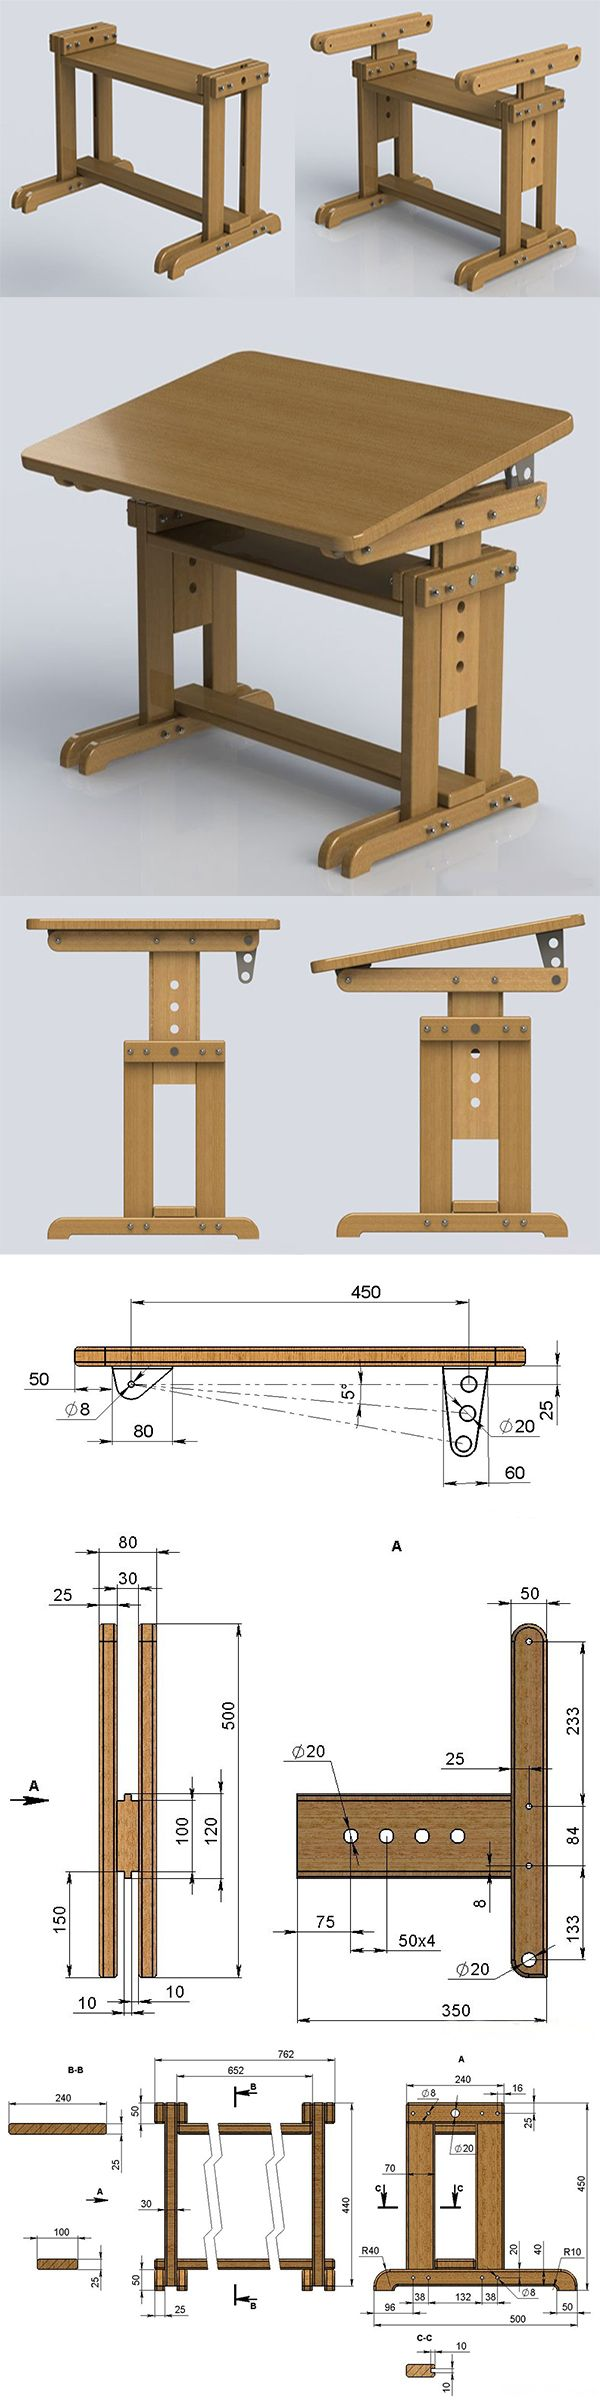 Drafting table dimensions - Nice Little Drafting Table Customizable